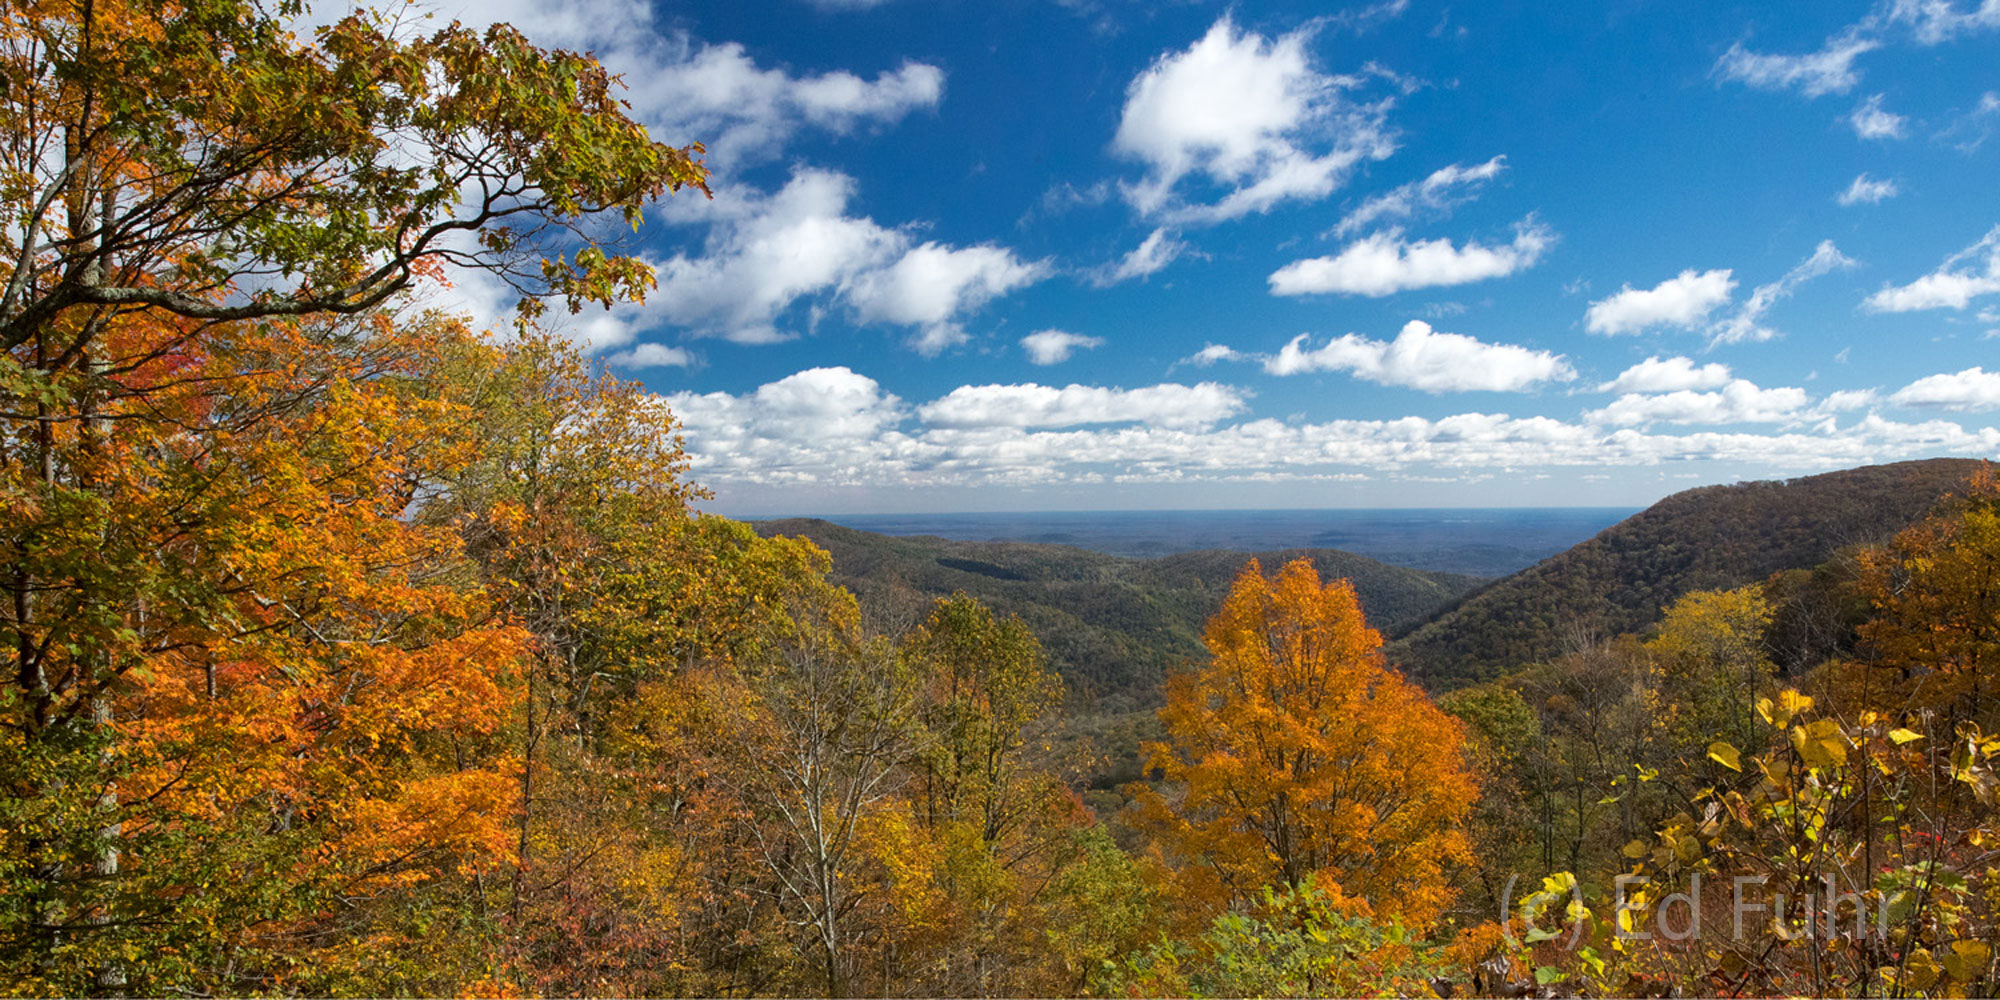 A colorful bouquet of oranges, reds and yellows transform this vista into one of the finest autumn views in Shenandoah, but you...